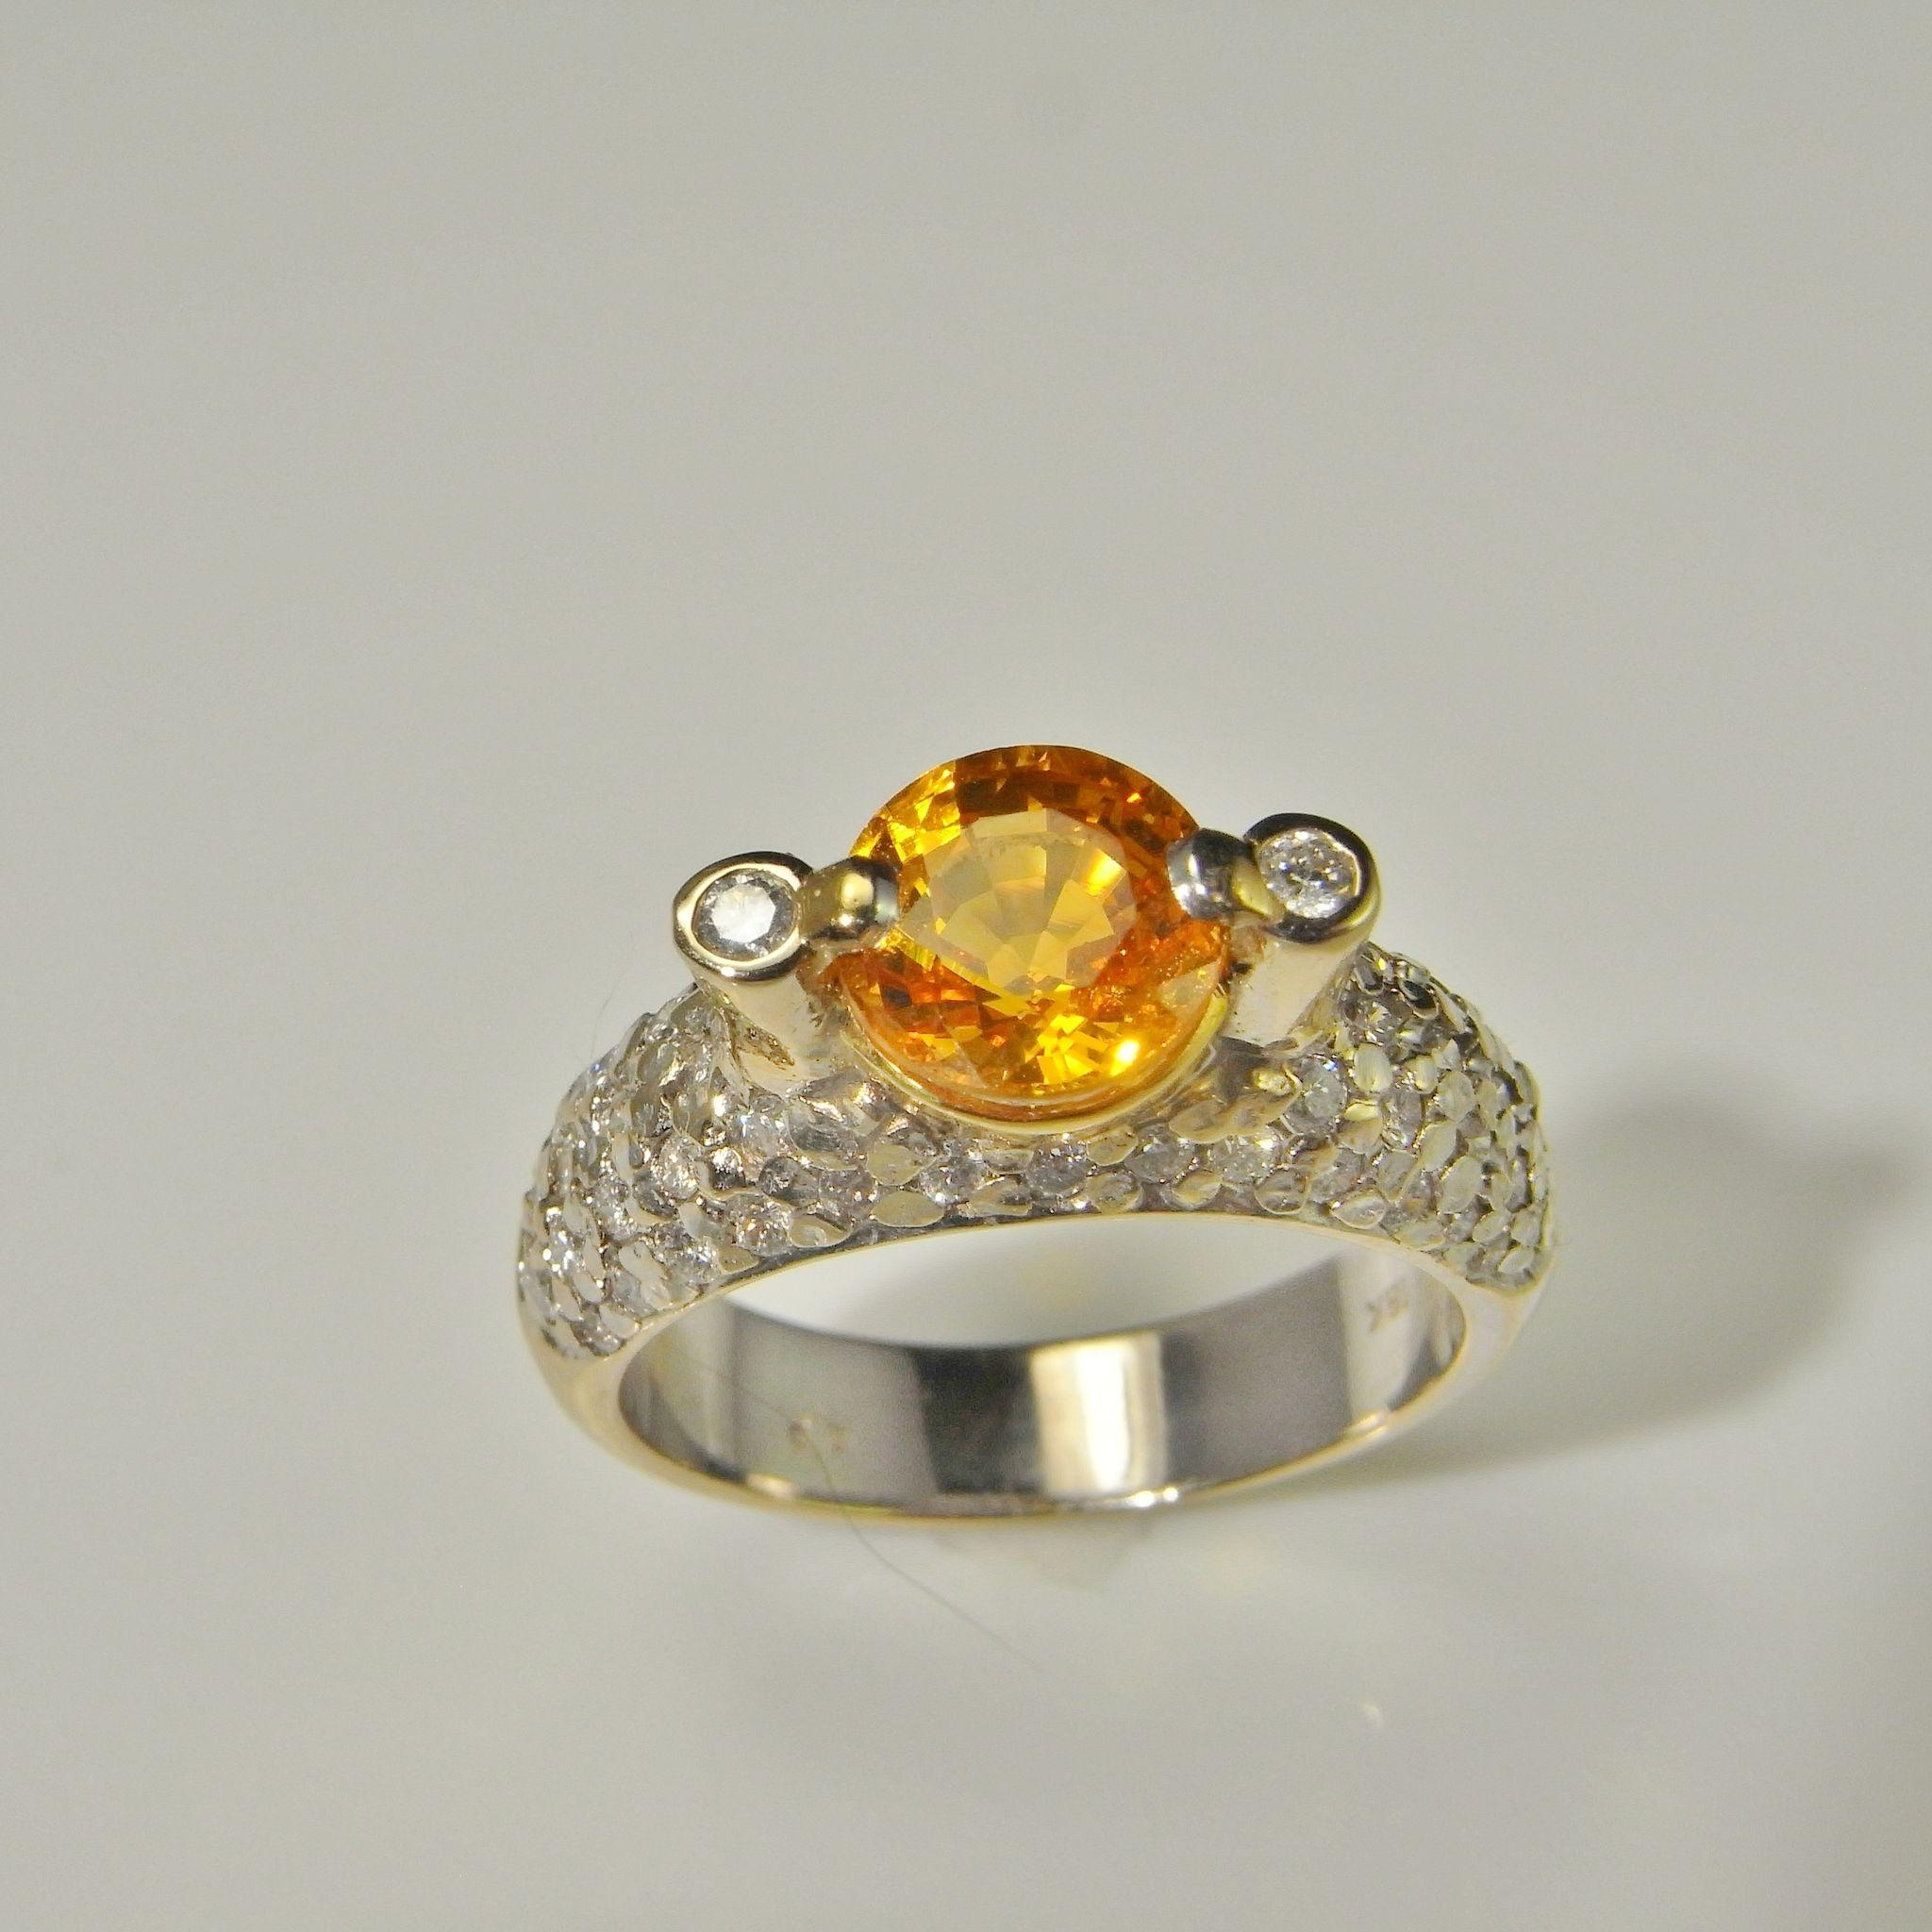 Golden Sapphire Diamond Engagement Ring Wedding Ring Anniversary